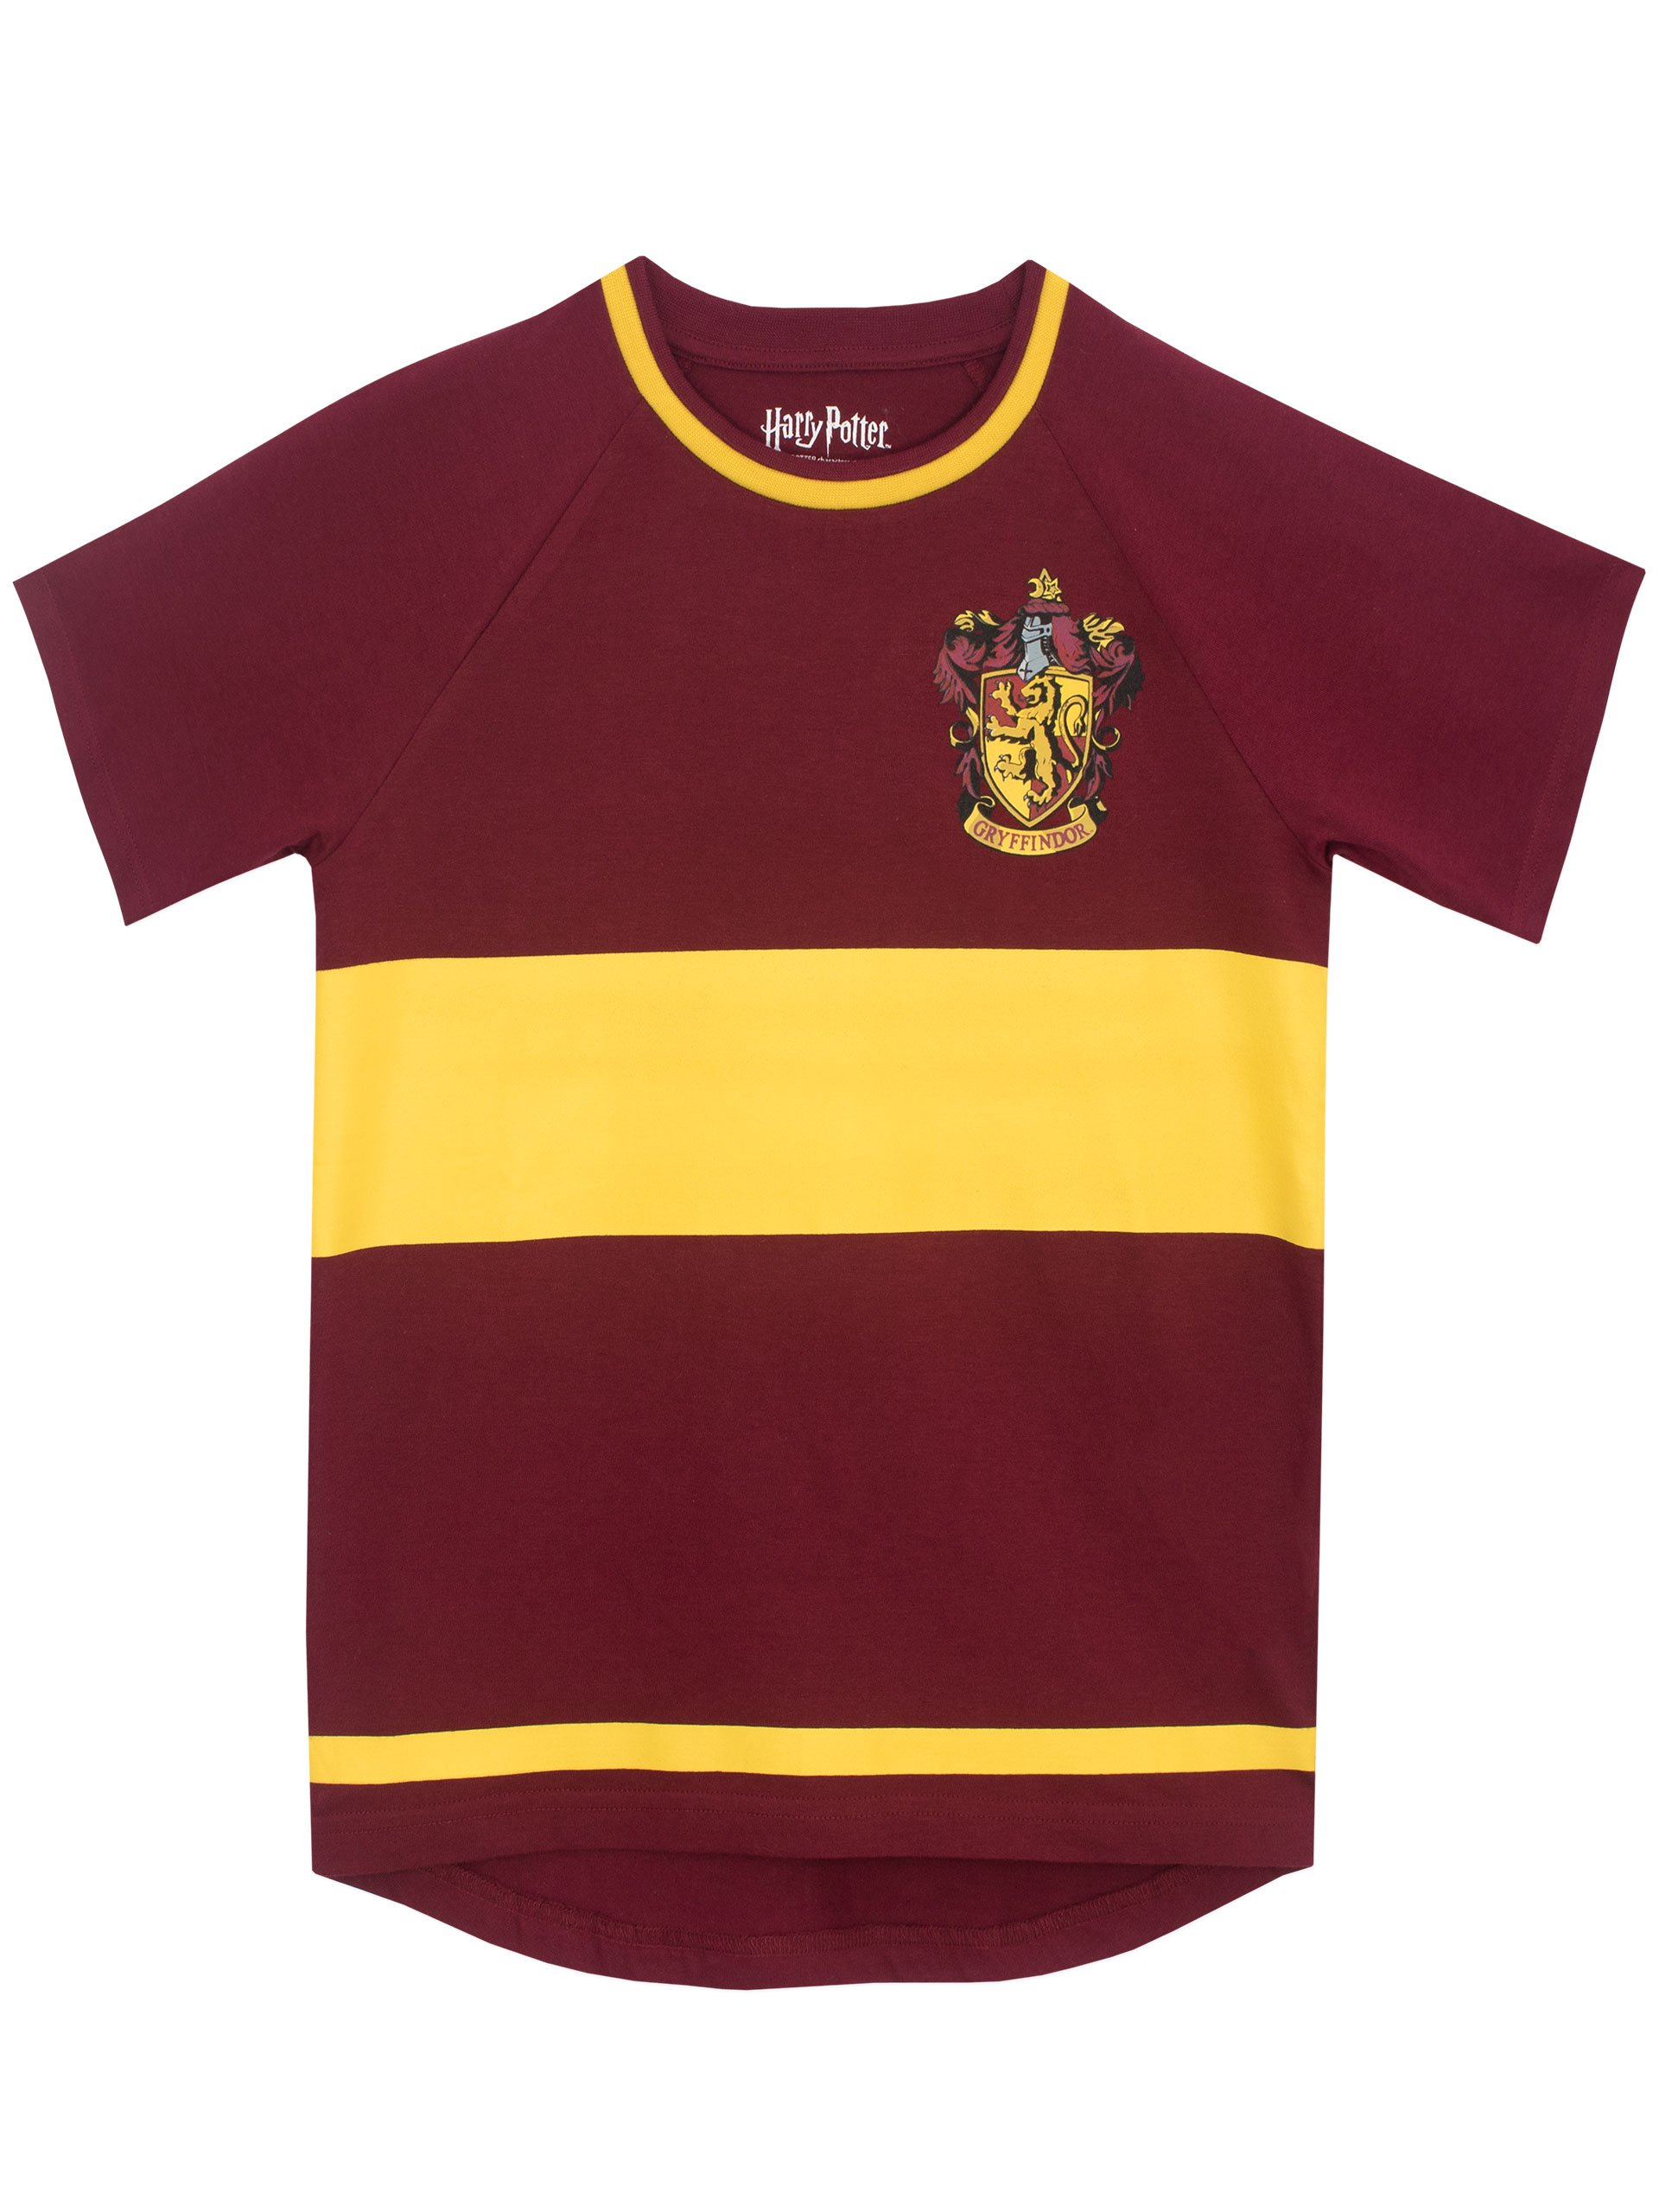 Harry Potter Boys Gryfindor Quidditch T-Shirt Size 10